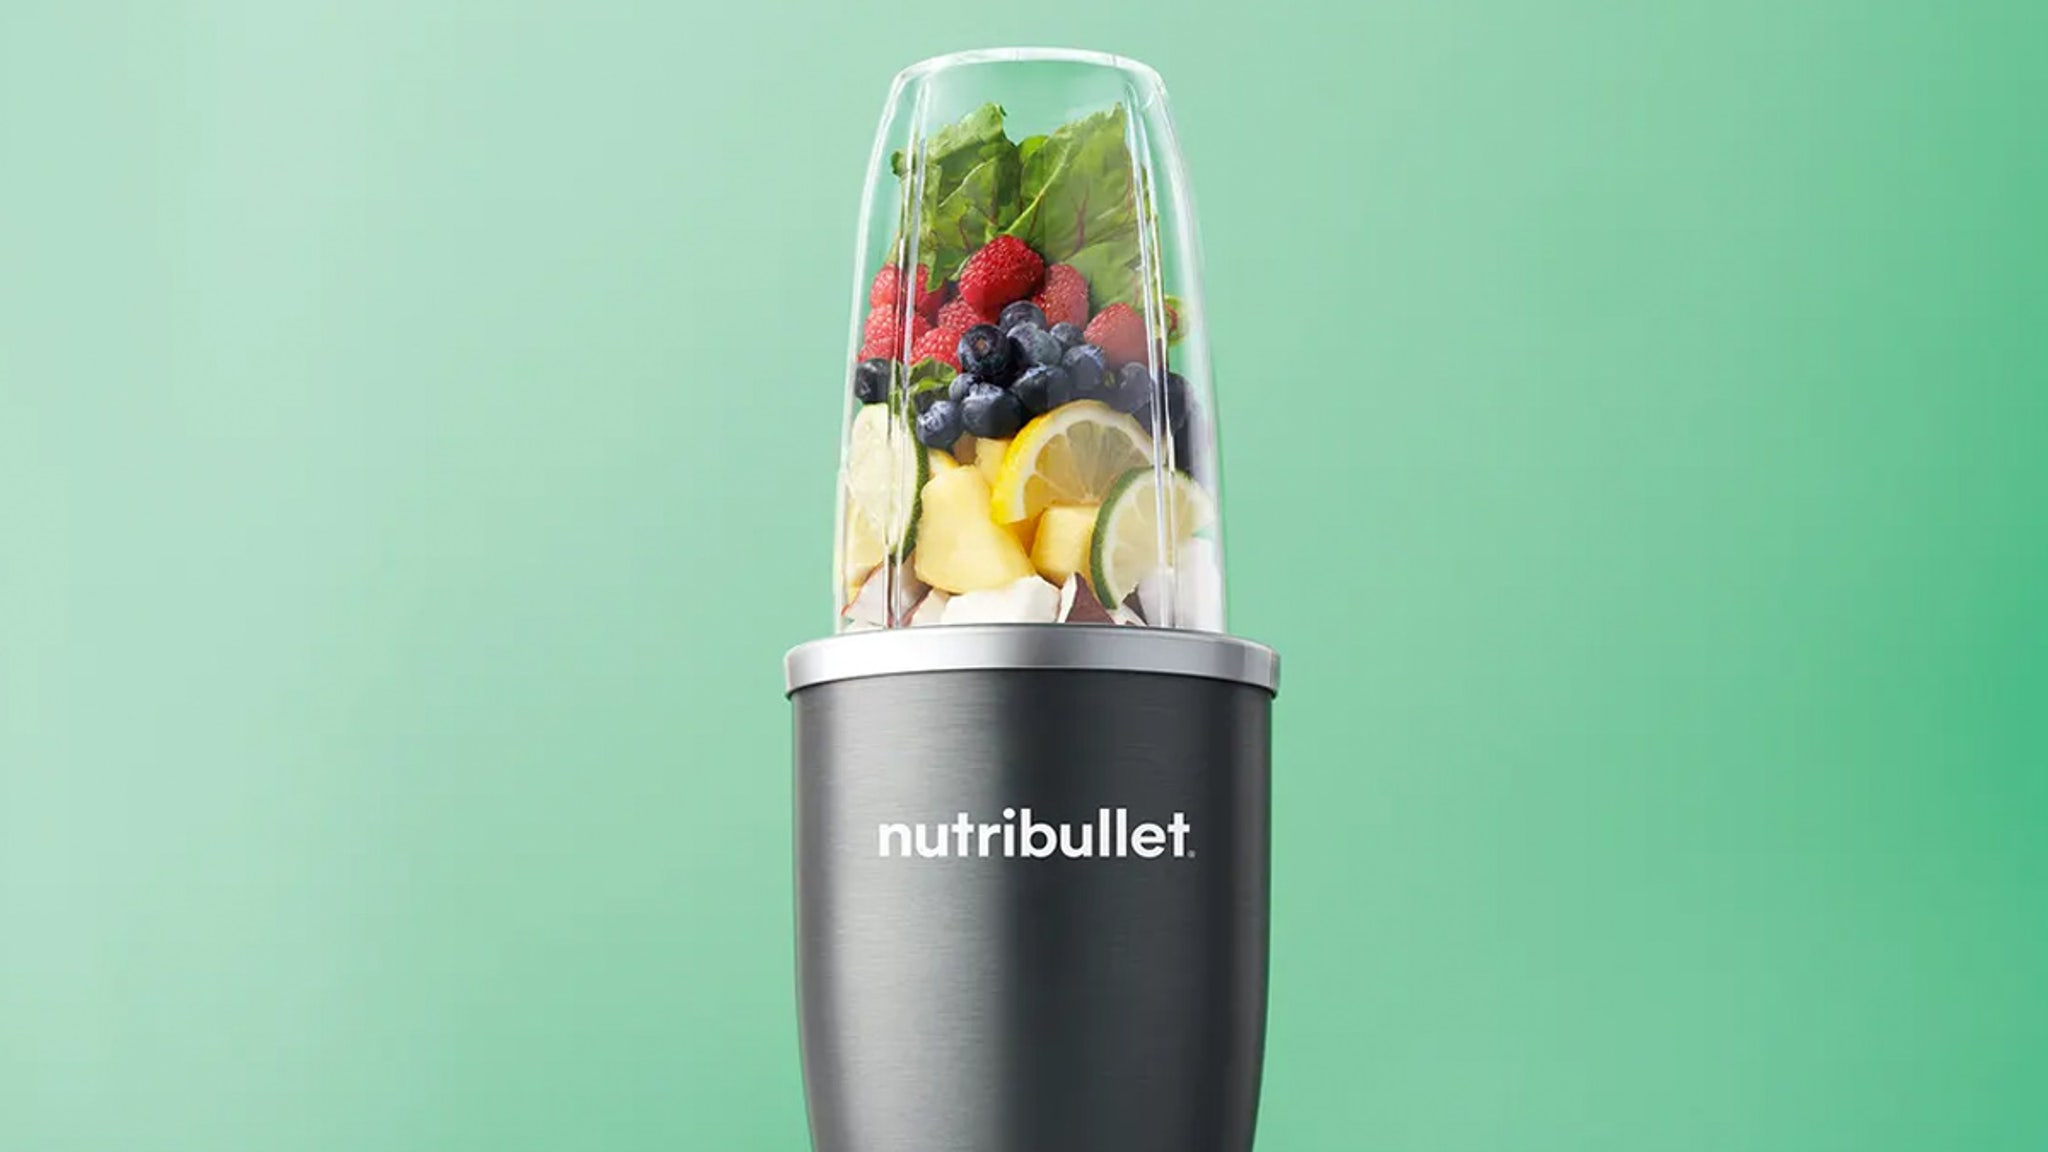 NutriBullet Sued After Woman Claims It Exploded, Burned and Sliced Her